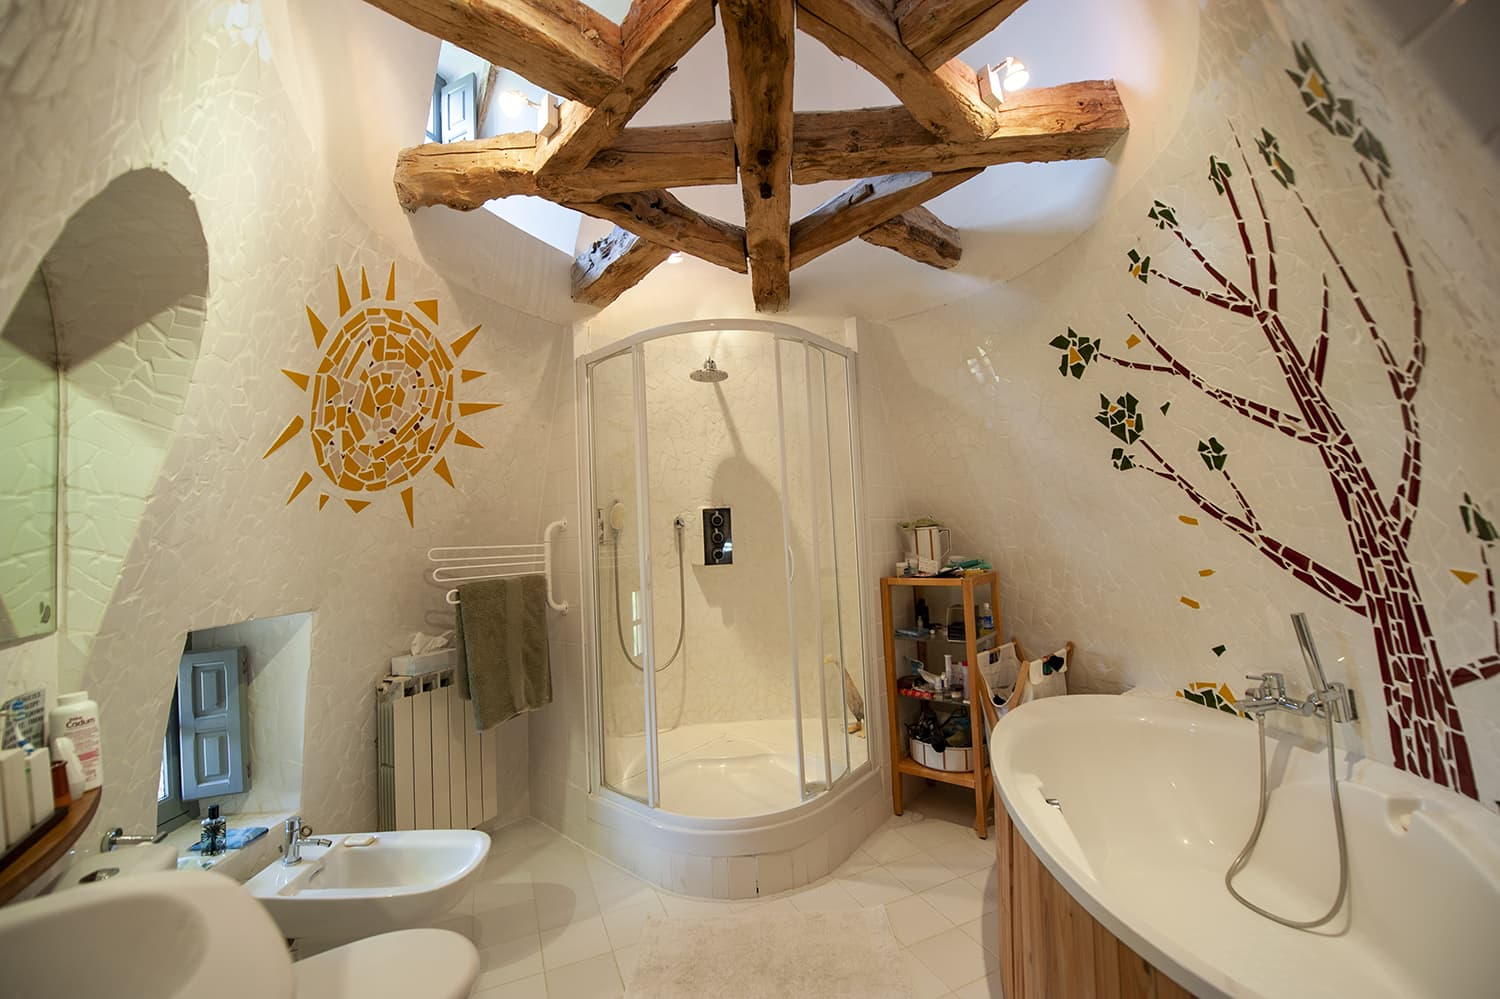 Bathroom in Crégols holiday home, Occitanie